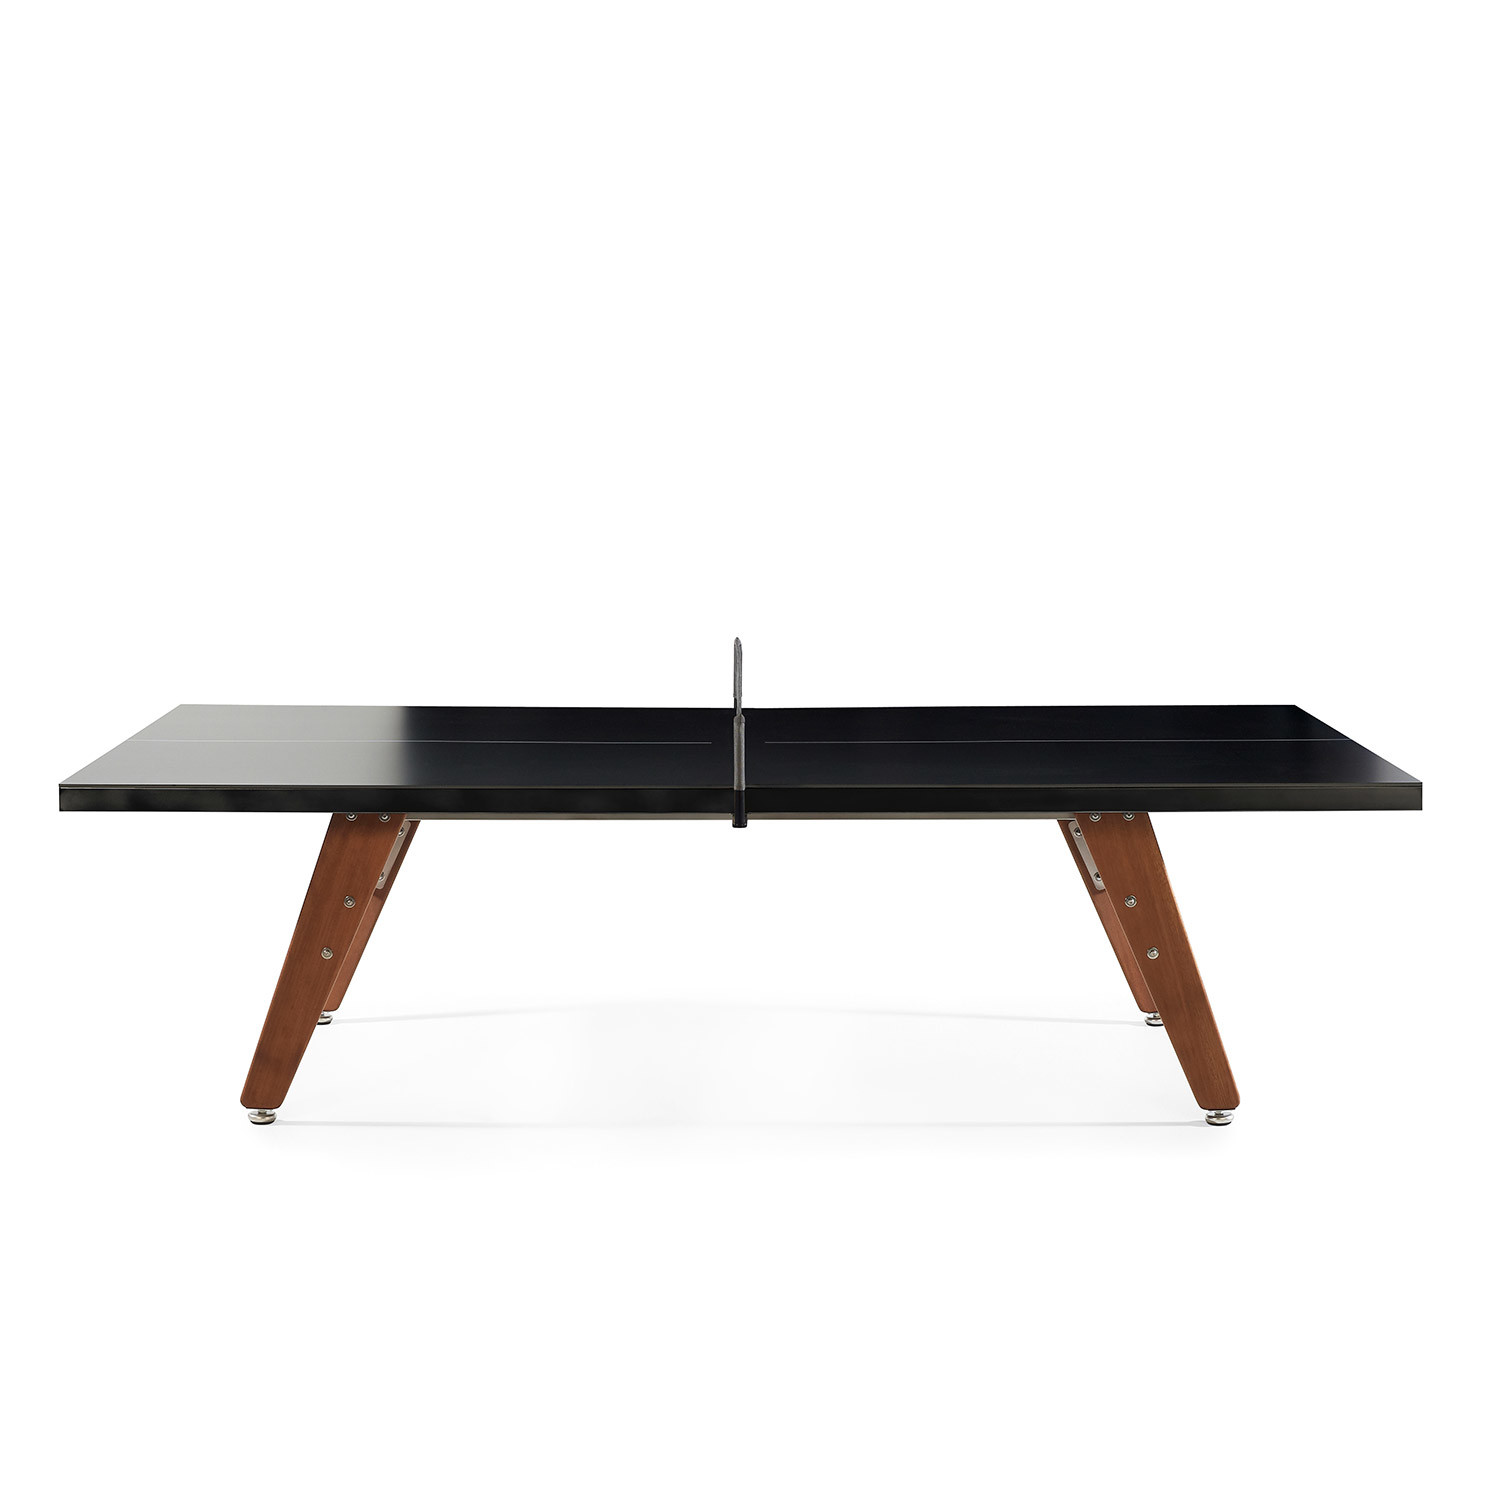 Rs ping pong black rs barcelona touch of modern for Runescape exp table 1 99